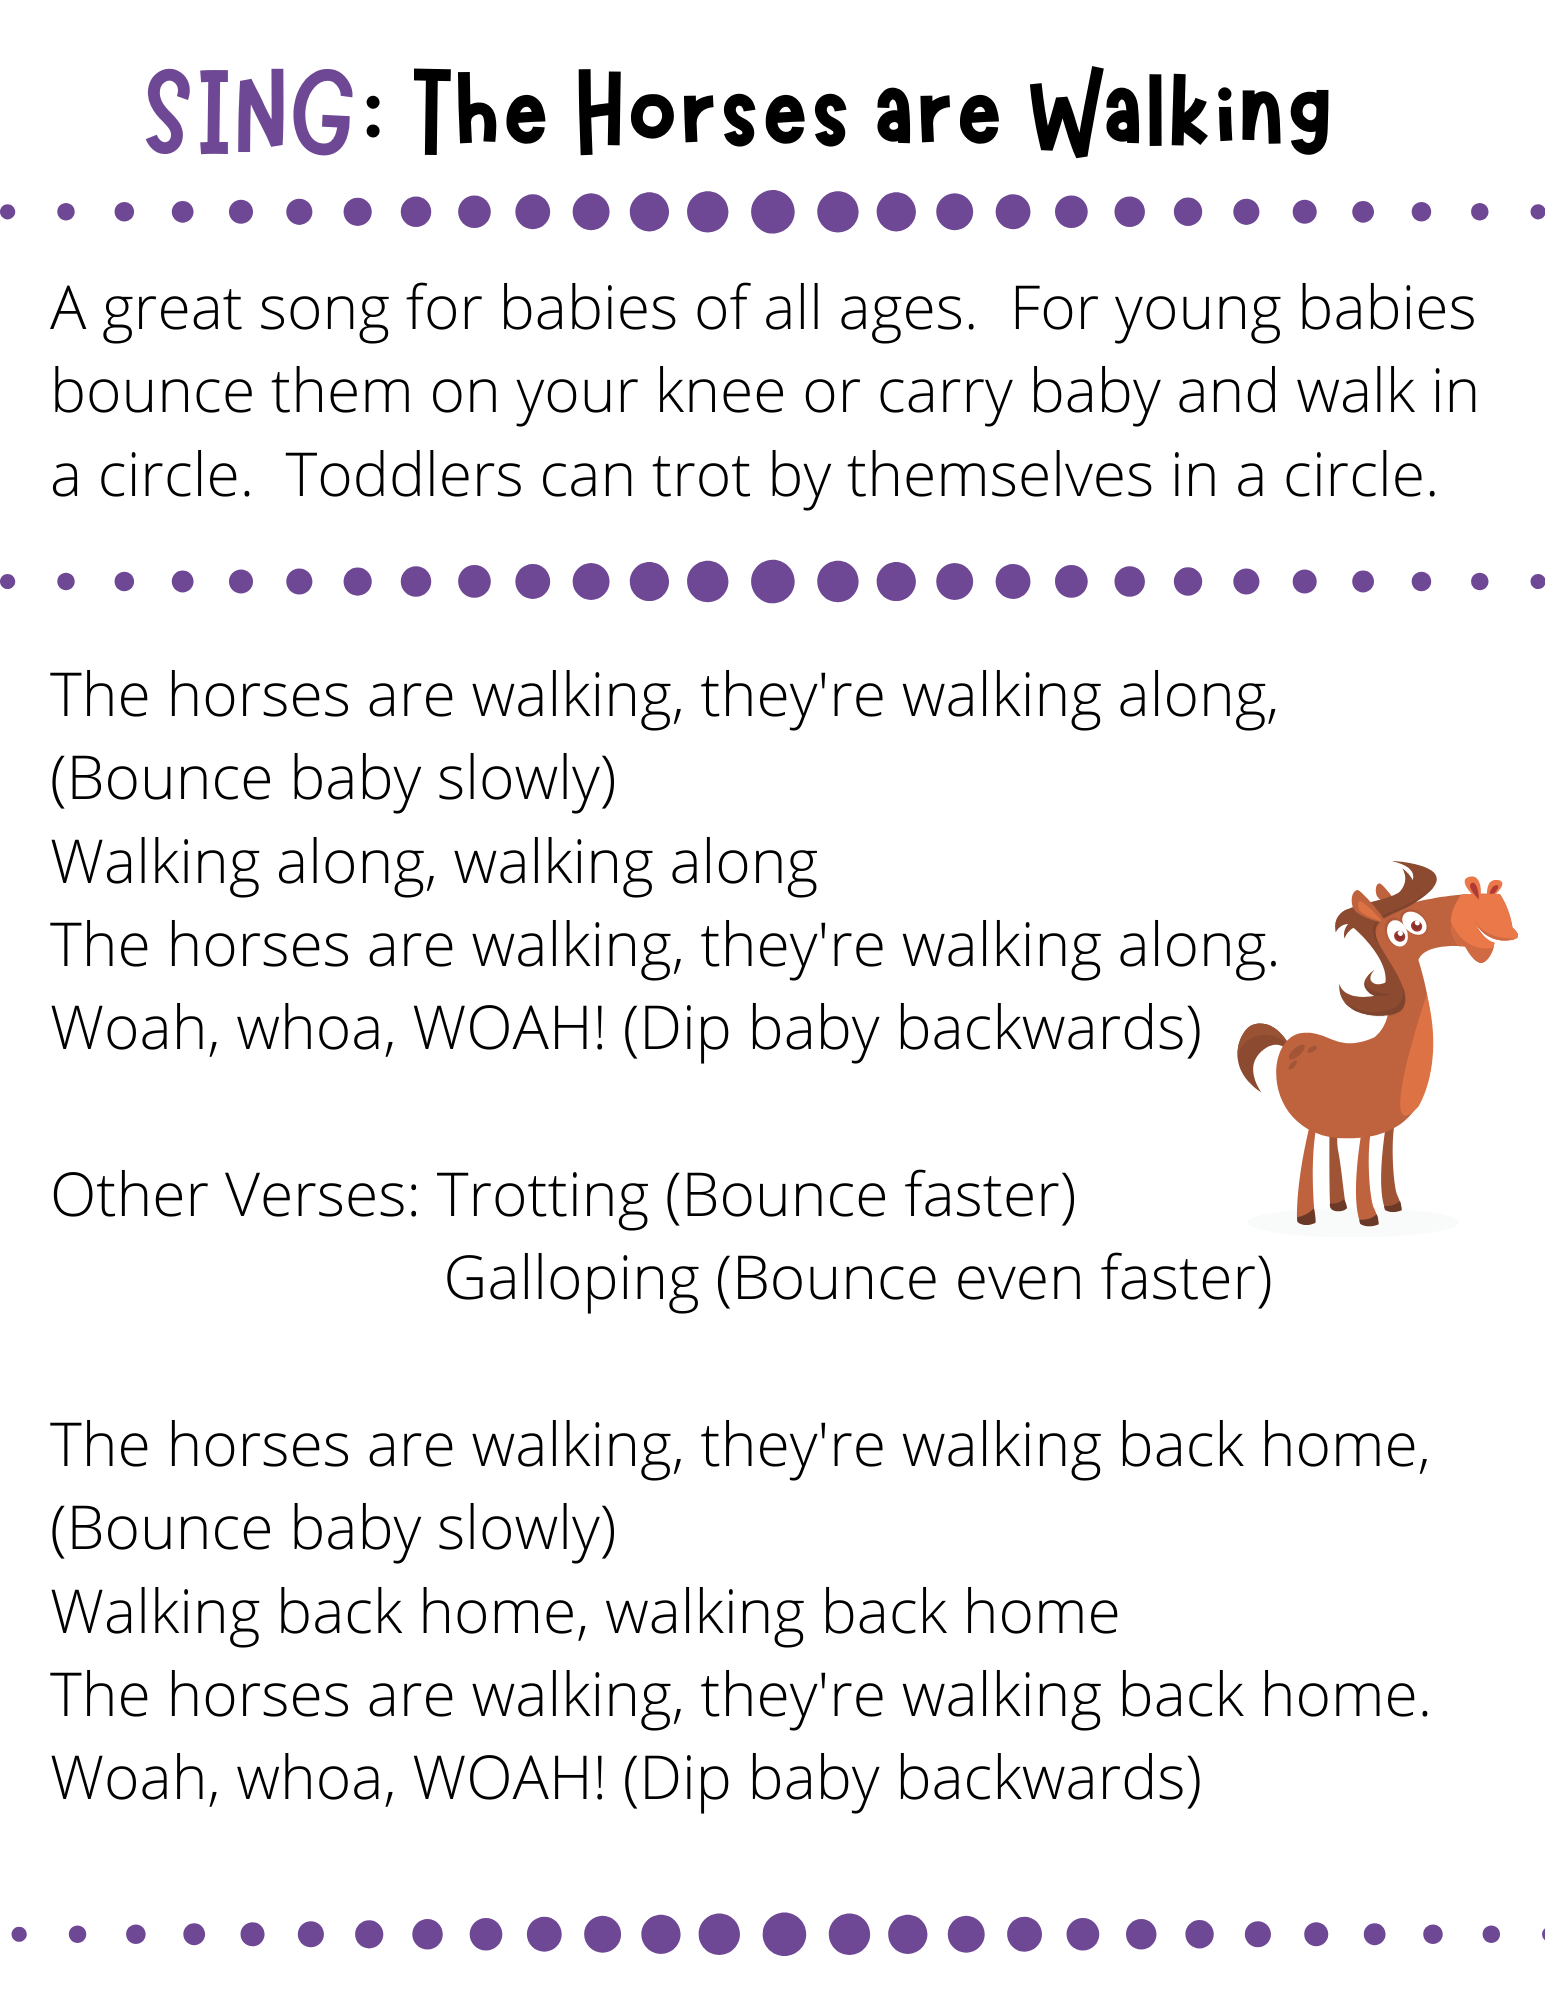 SING: The Horses are Walking A great song for babies of all ages.  For young babies bounce them on your knee or carry baby and walk in a circle.  Toddlers can trot by themselves in a circle. The horses are walking, they're walking along, (Bounce baby slowly) Walking along, walking along The horses are walking, they're walking along. Woah, whoa, WOAH! (Dip baby backwards)  Other Verses: Trotting (Bounce faster)                          Galloping (Bounce even faster)  The horses are walking, they're walking back home, (Bounce baby slowly) Walking back home, walking back home The horses are walking, they're walking back home. Woah, whoa, WOAH! (Dip baby backwards)